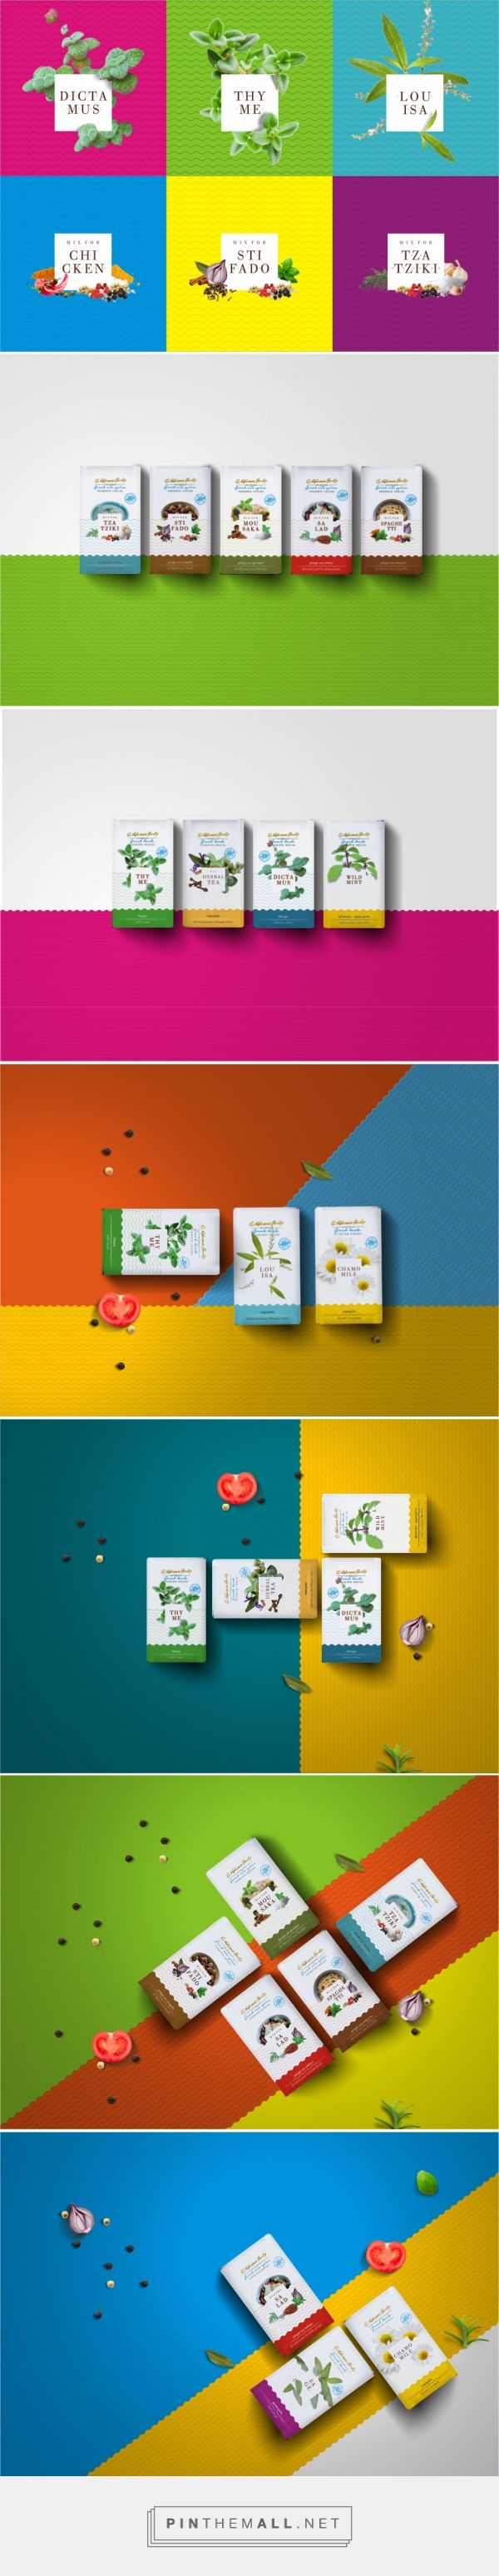 Leftgraphic - Kabriani's Family Greek mix spices packaging by Lefteris Panagoulopoulos / Leftgraphic